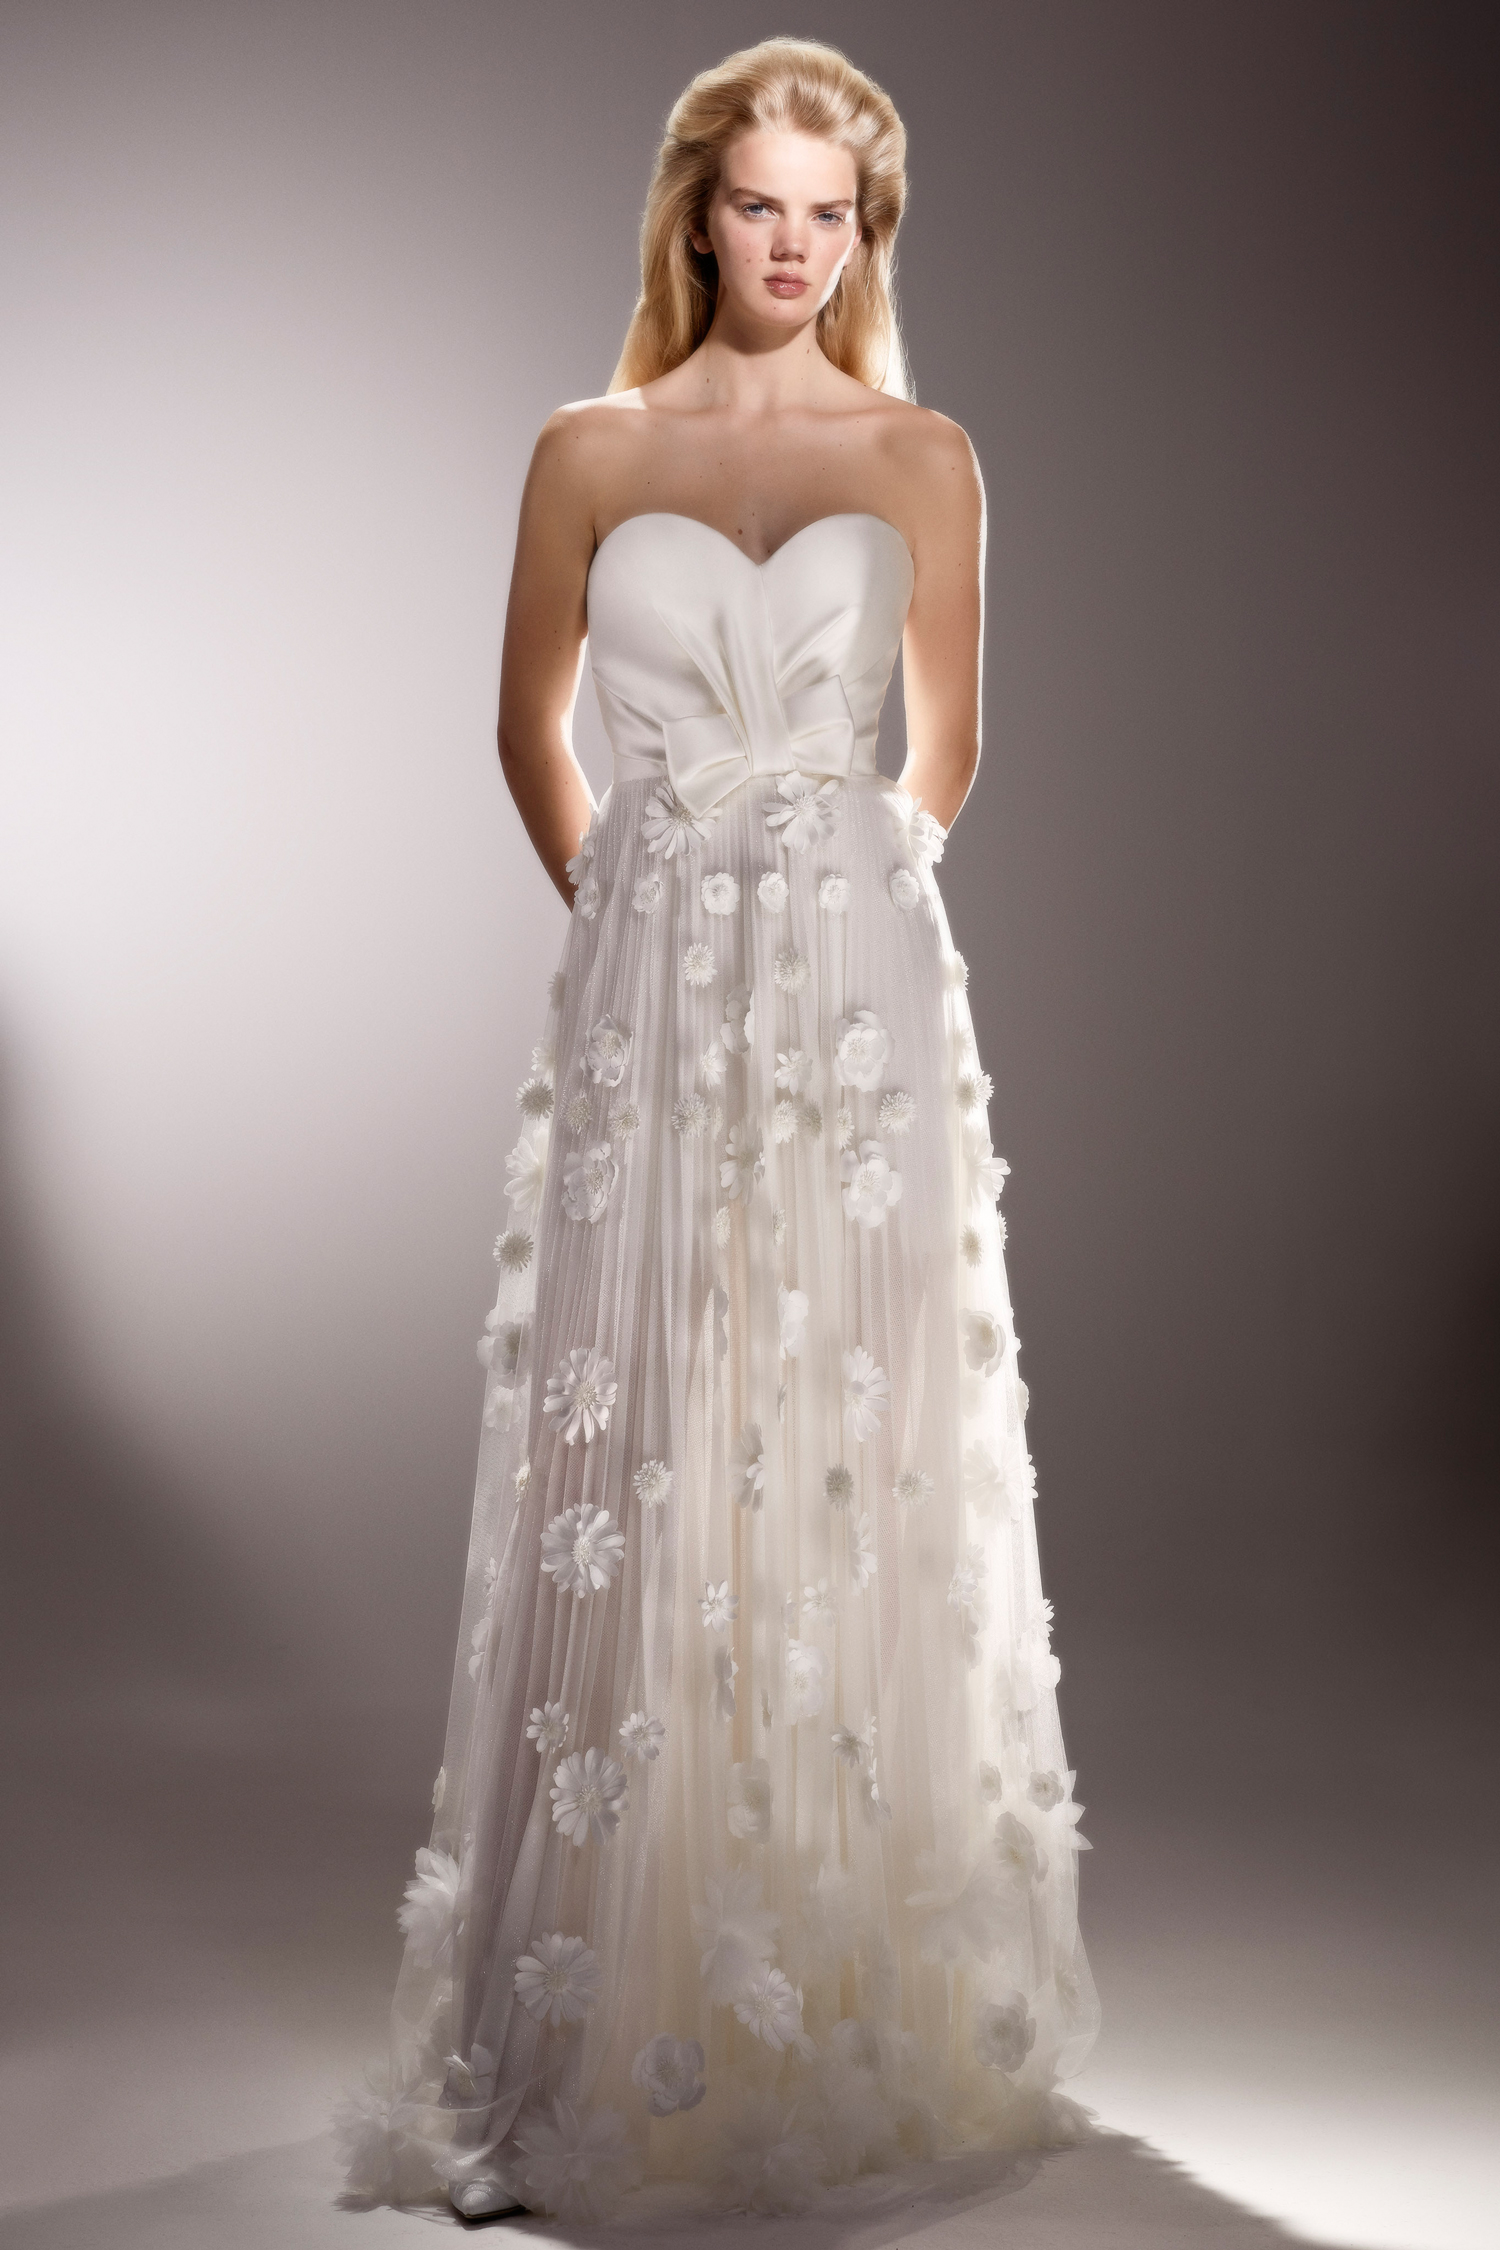 viktor and rolf strapless sheath wedding dress with floral applique spring 2020